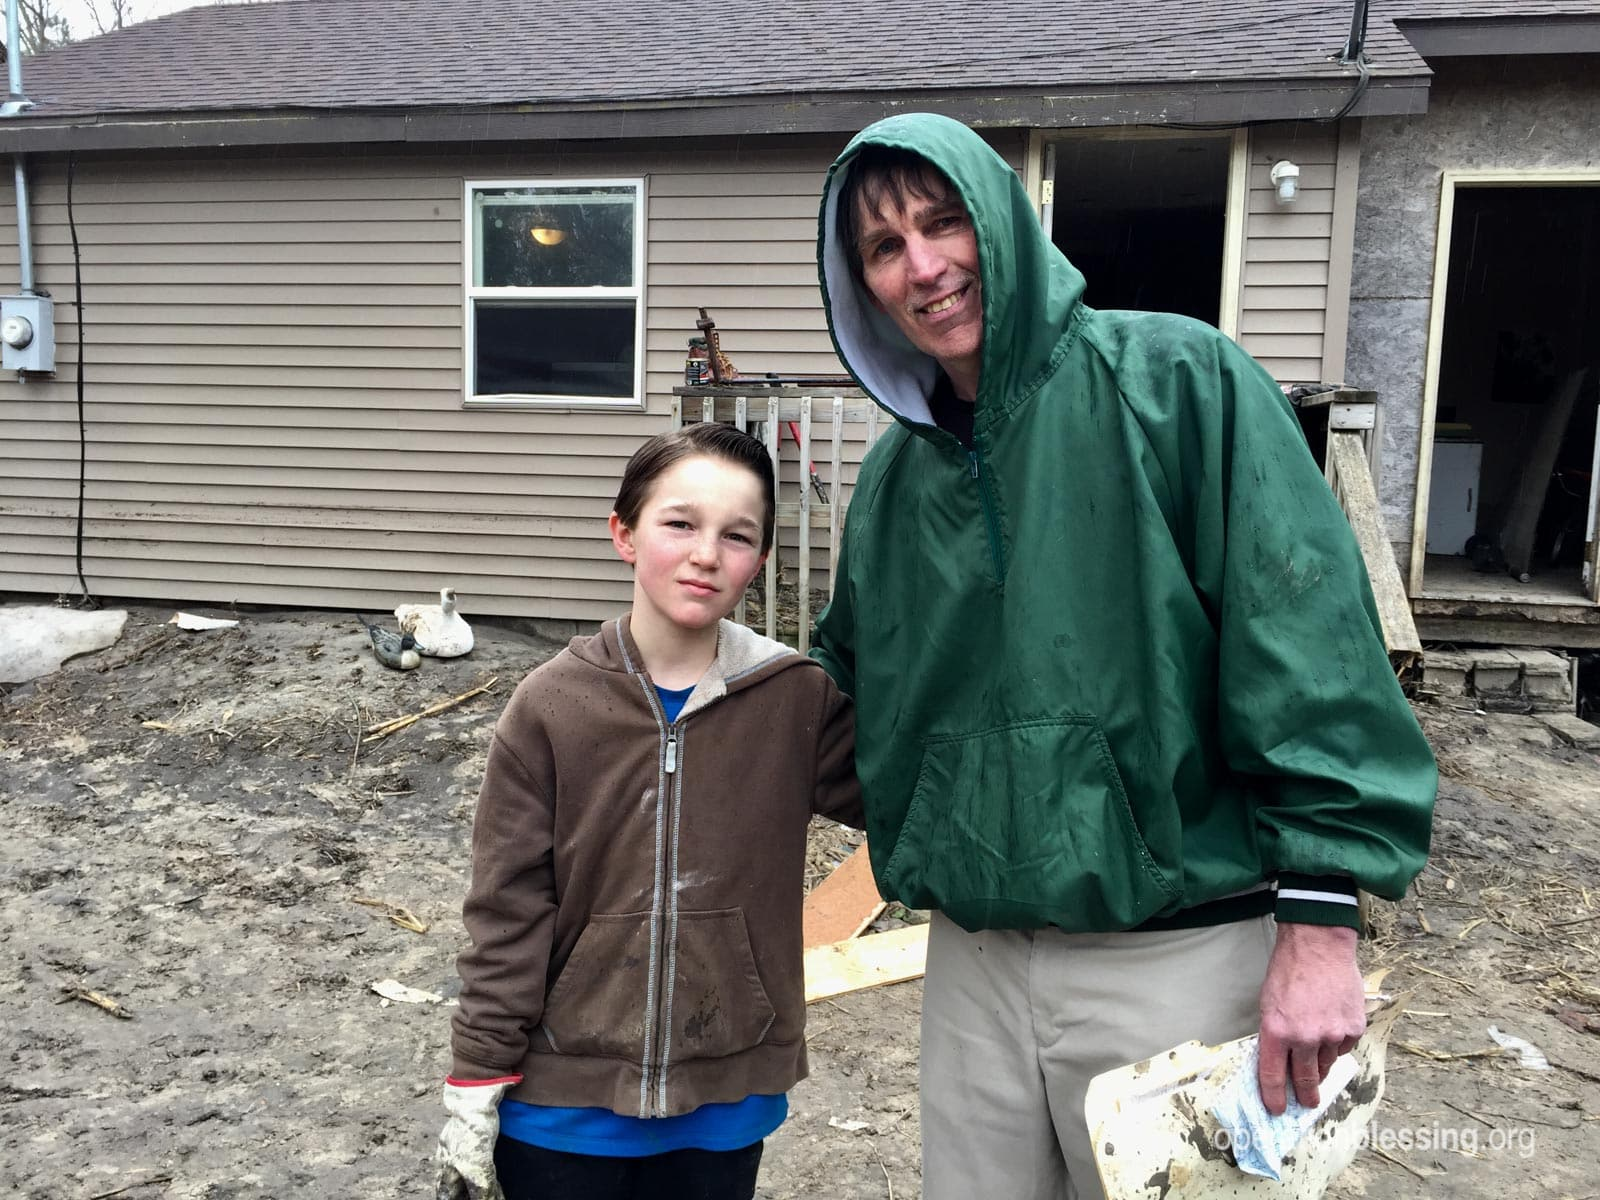 Jack and his son, TJ, stand in front of their flooded home in Nebraska.